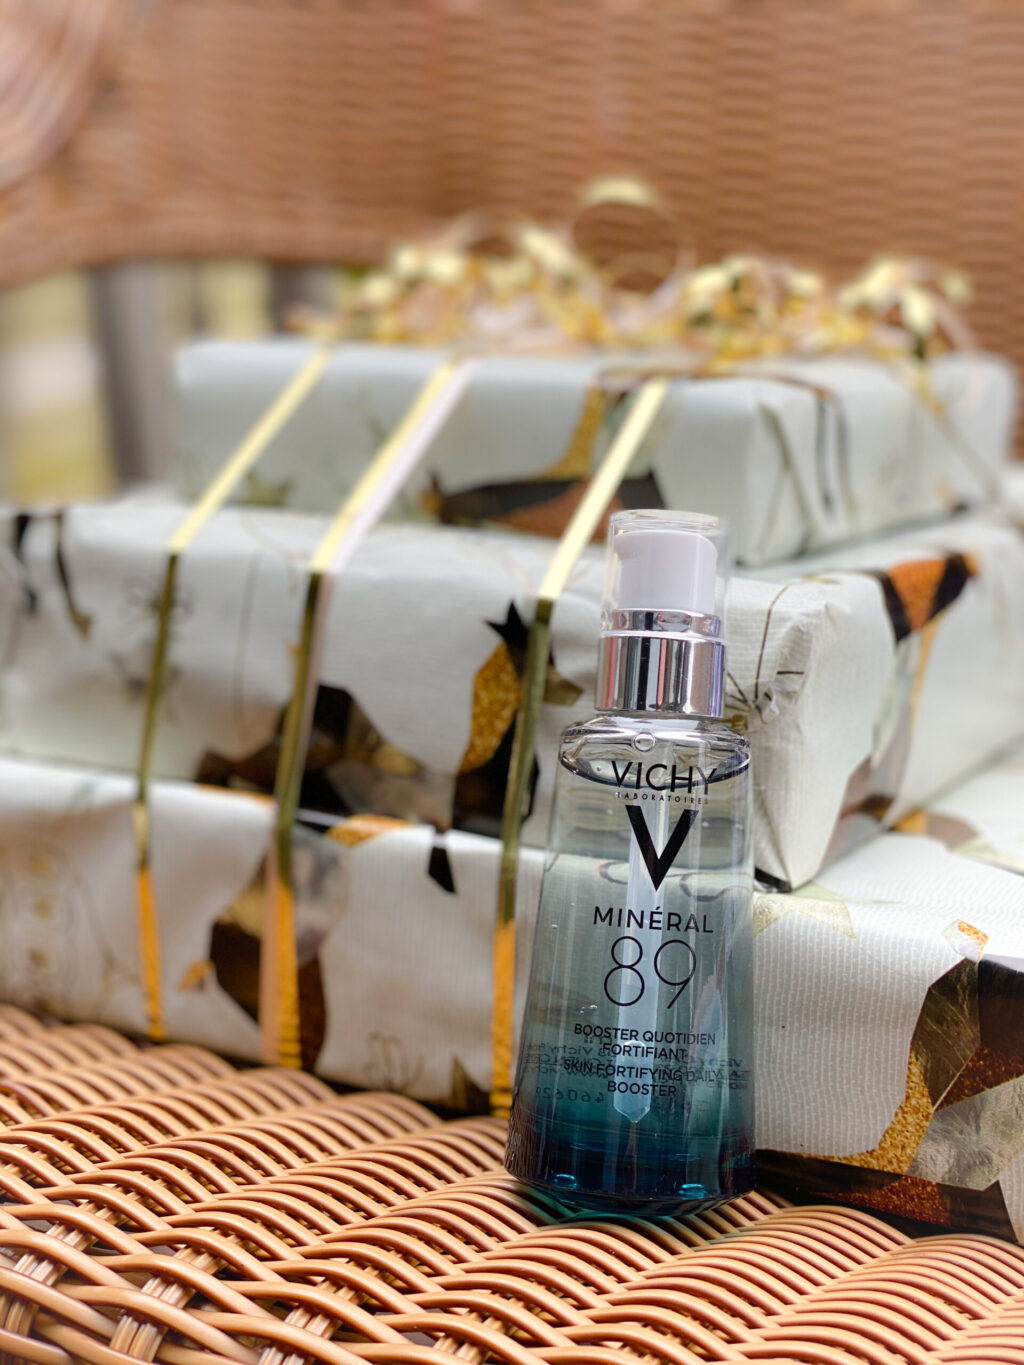 vichy mineal. 89 serum in blue bottle next to gold and ivory wrapped packages